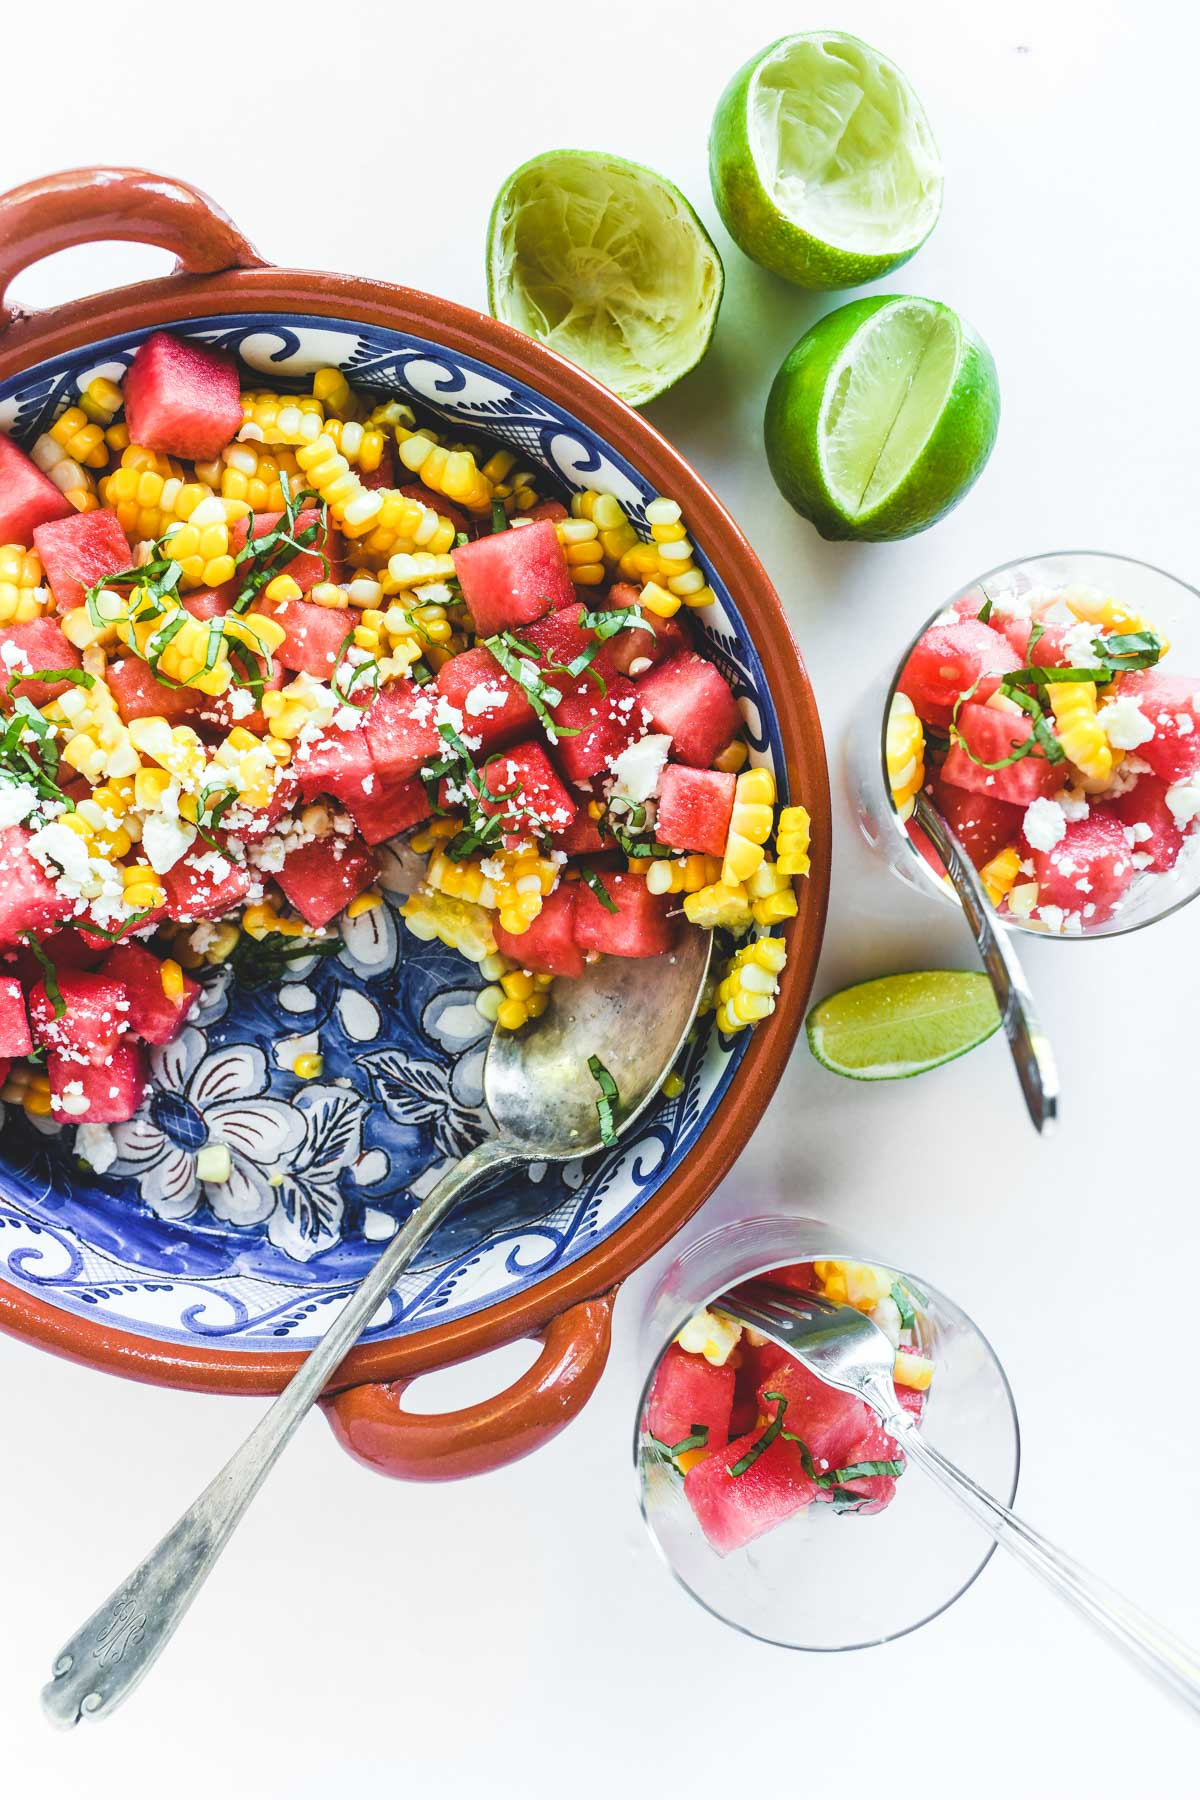 corn and watermelon salad with glasses and limes